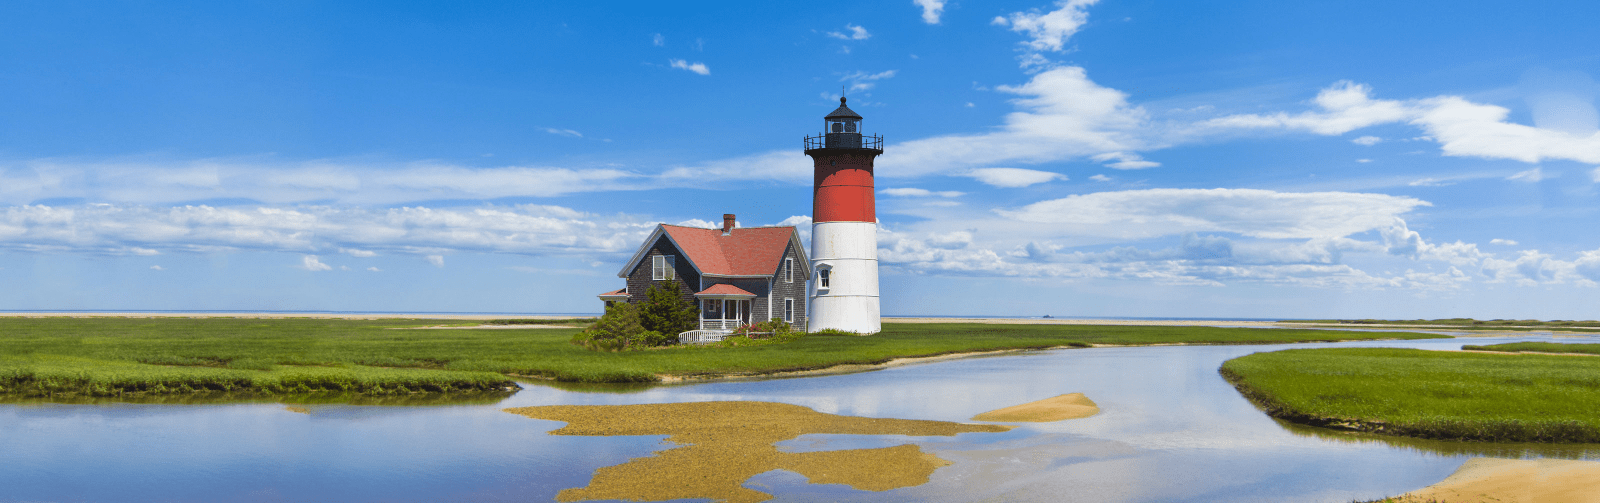 Cape Cod Real Estate & Cape Cod Homes | Cape Cod Vacation